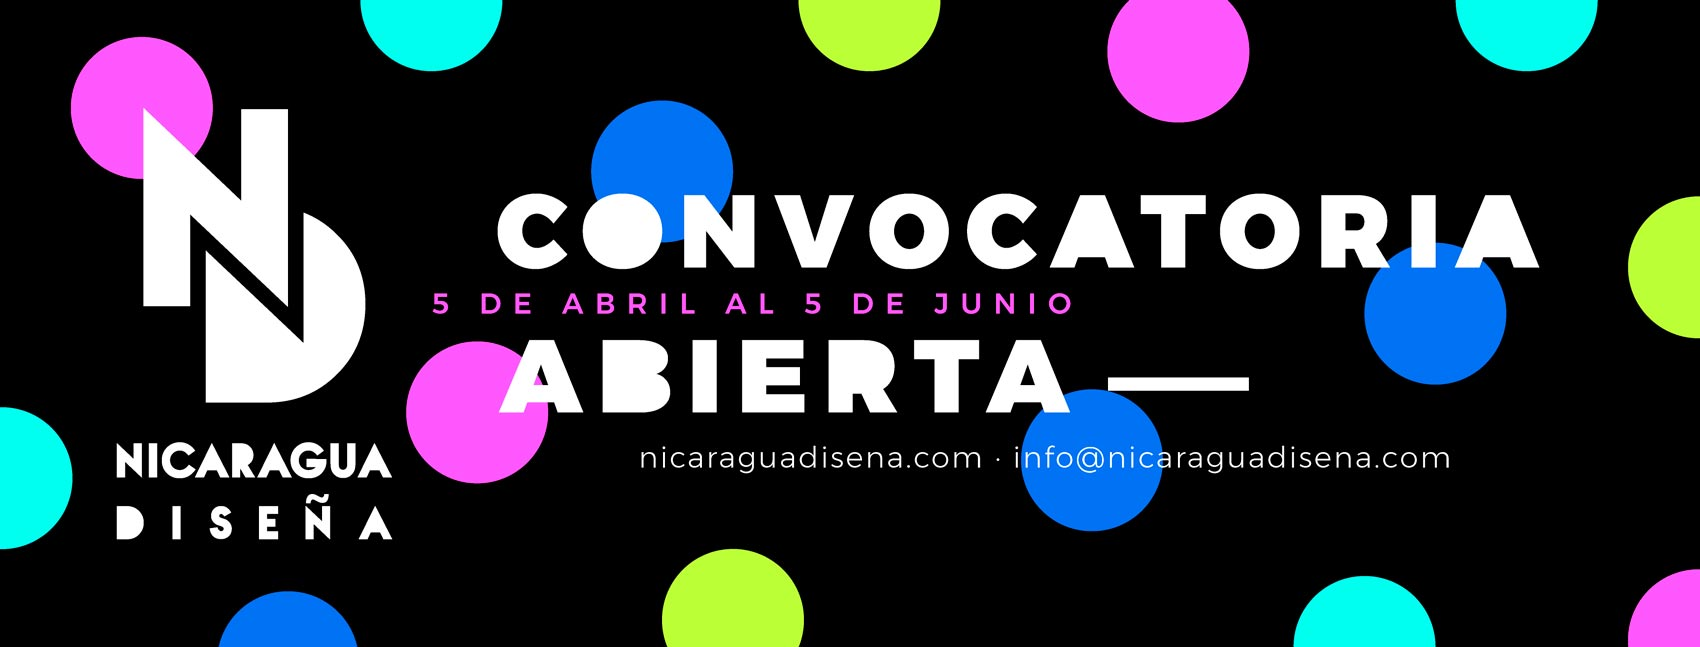 Banner-Convocatoria-ND-2017